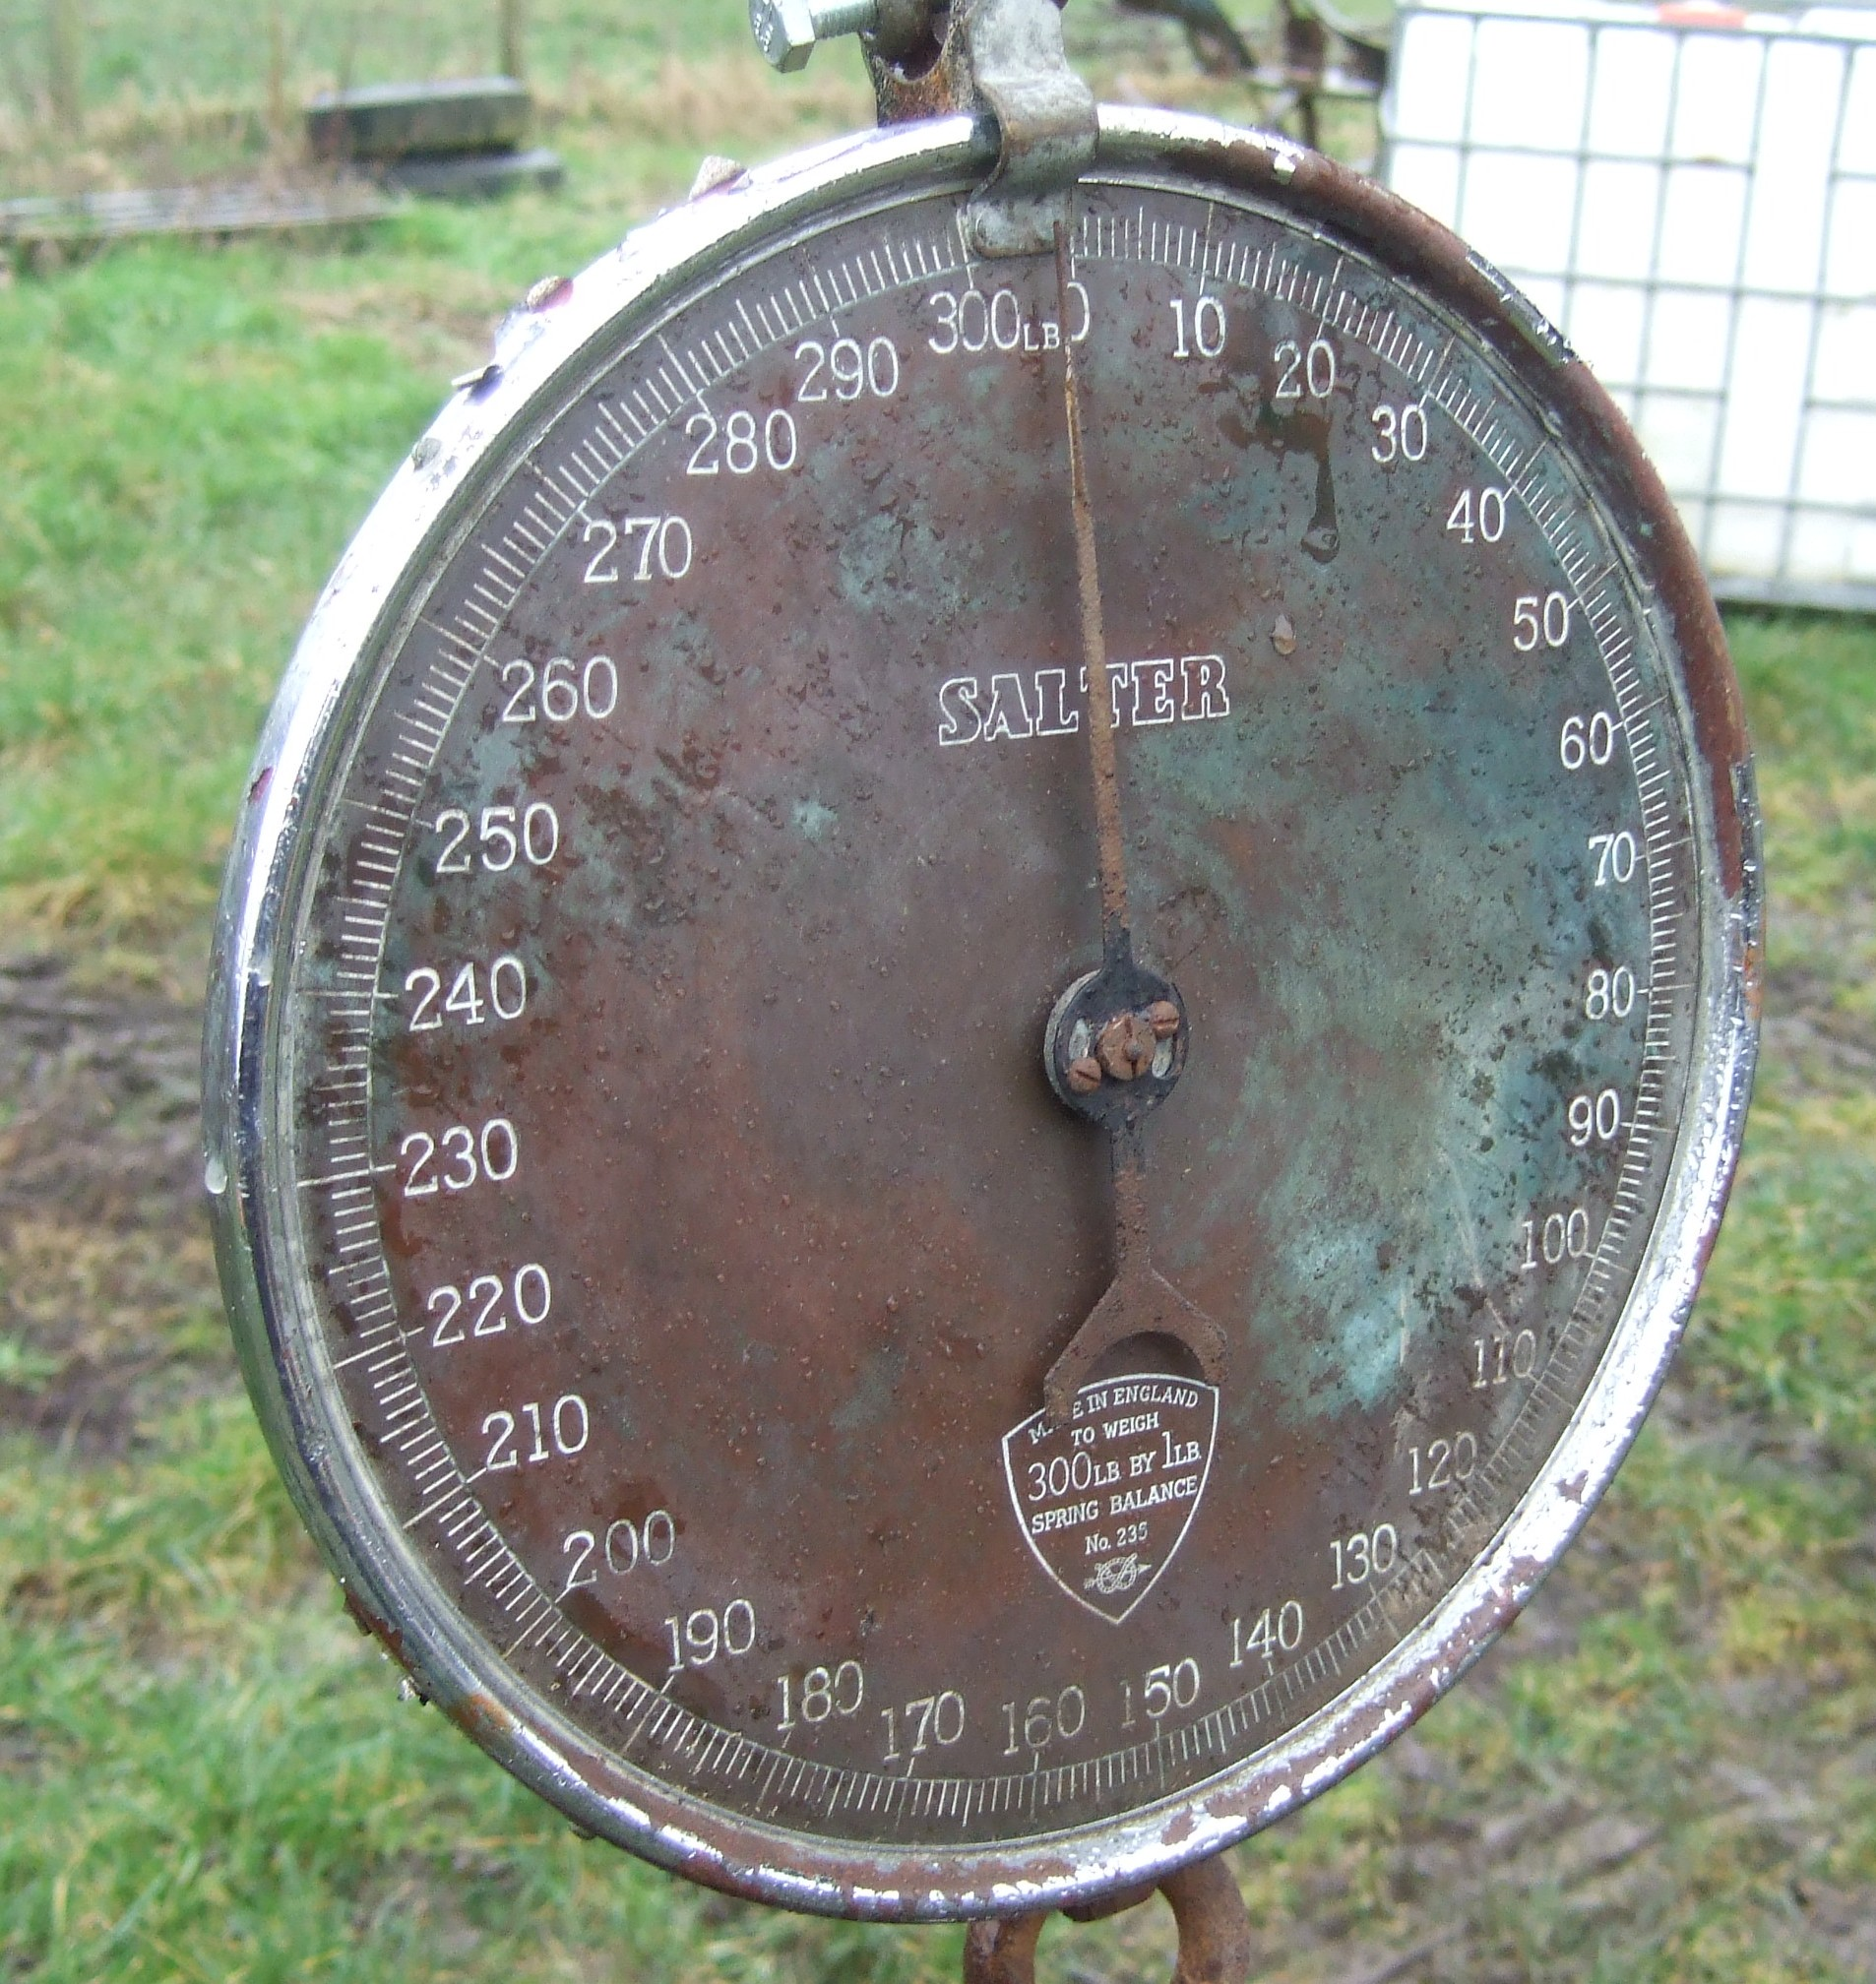 Brass dial on antique sheep weight scales